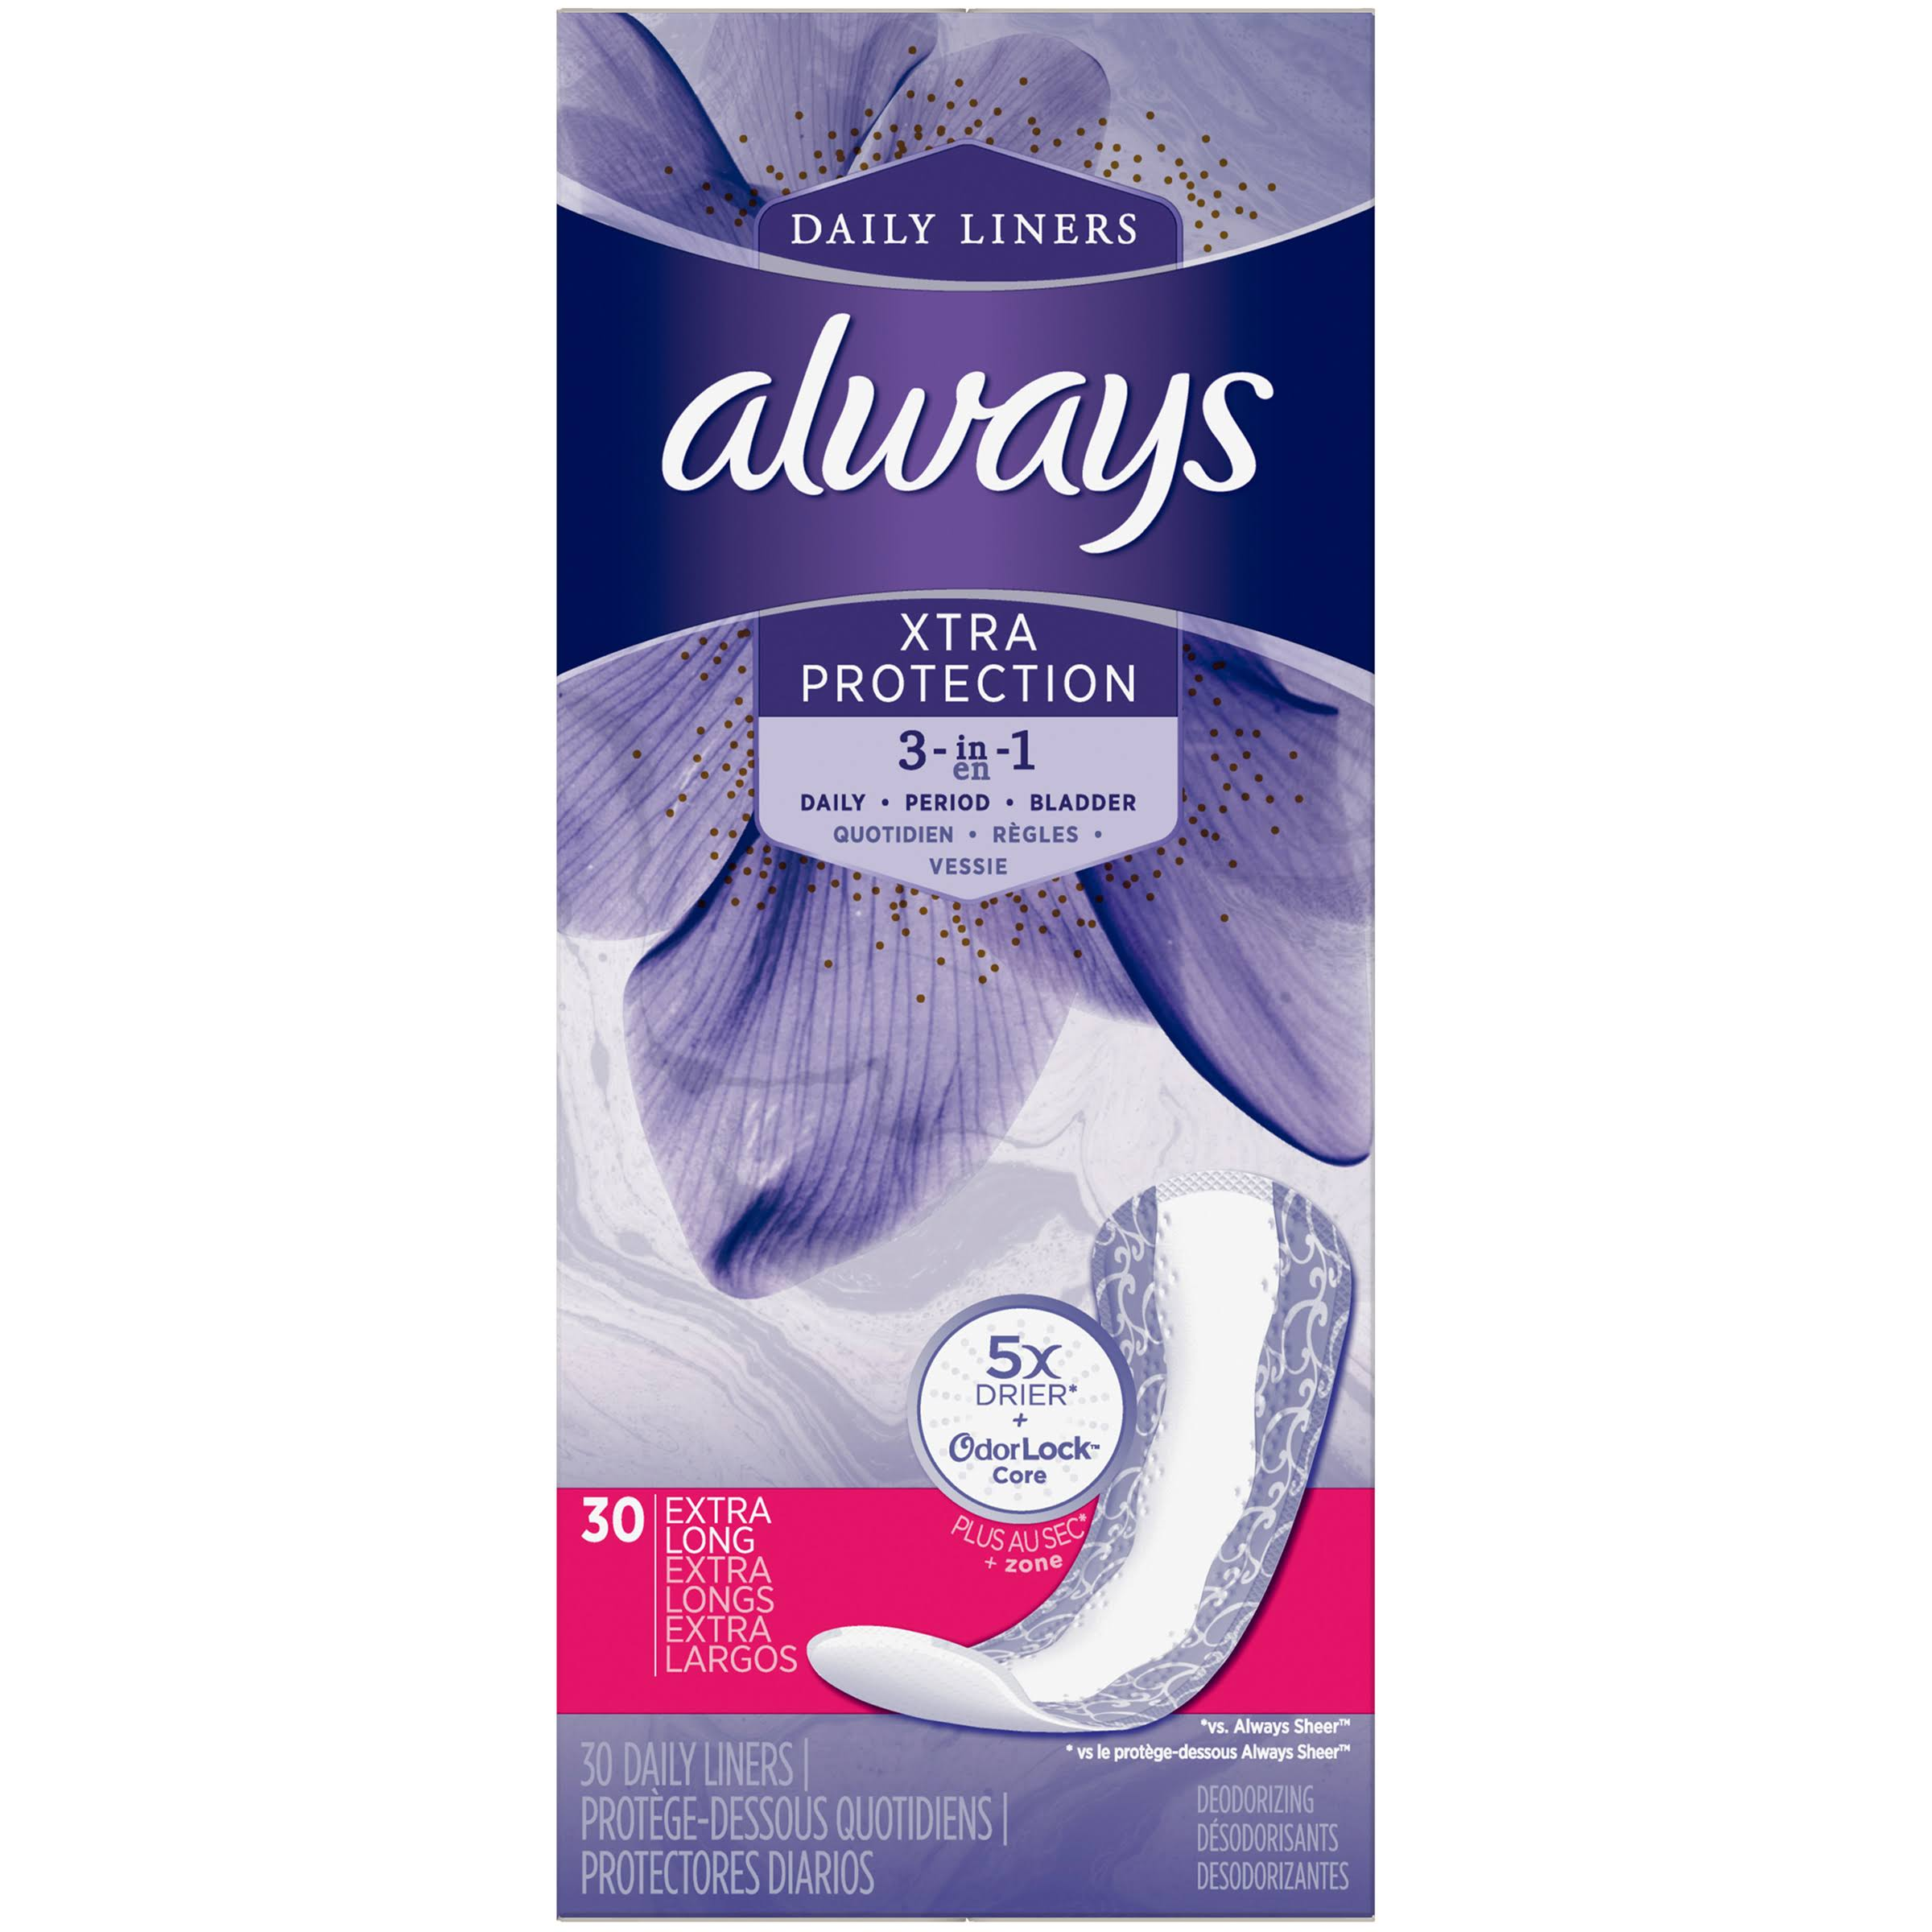 Always Xtra Protection Extra Long Deodorizing Liners with Odor Lock - 30 Pack